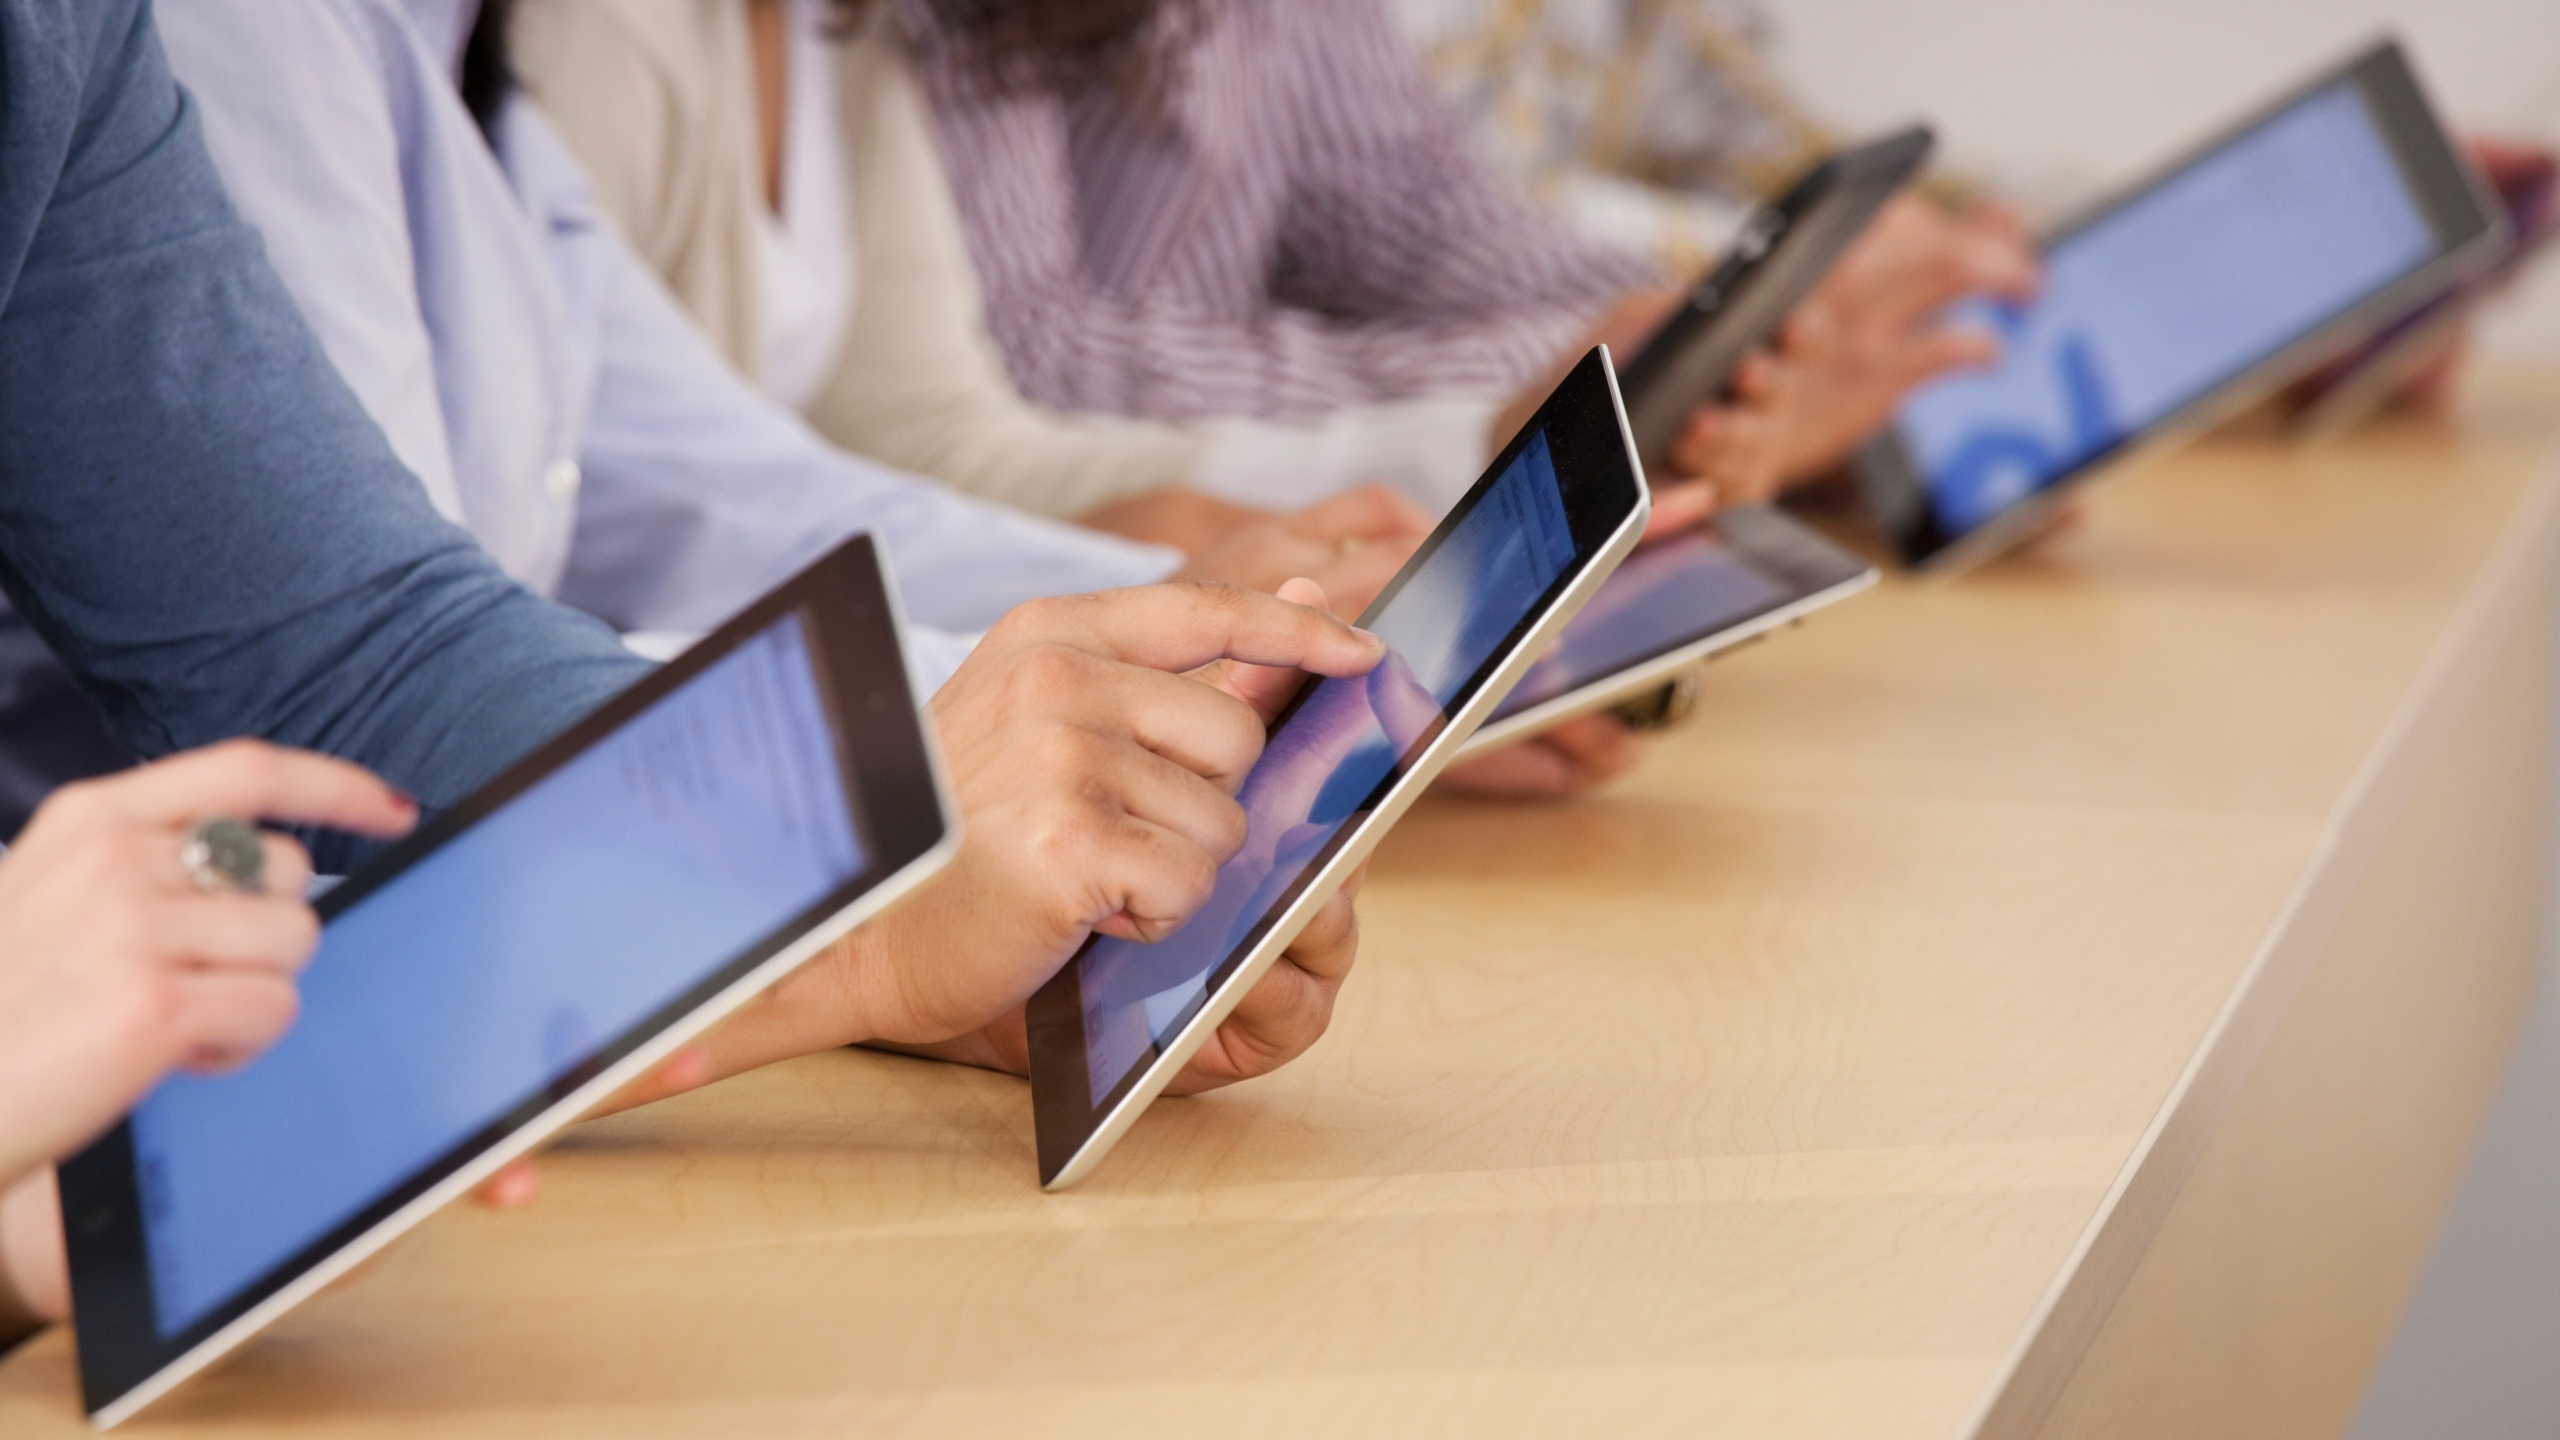 Students use iPads in this undated file photo. (Getty Images)